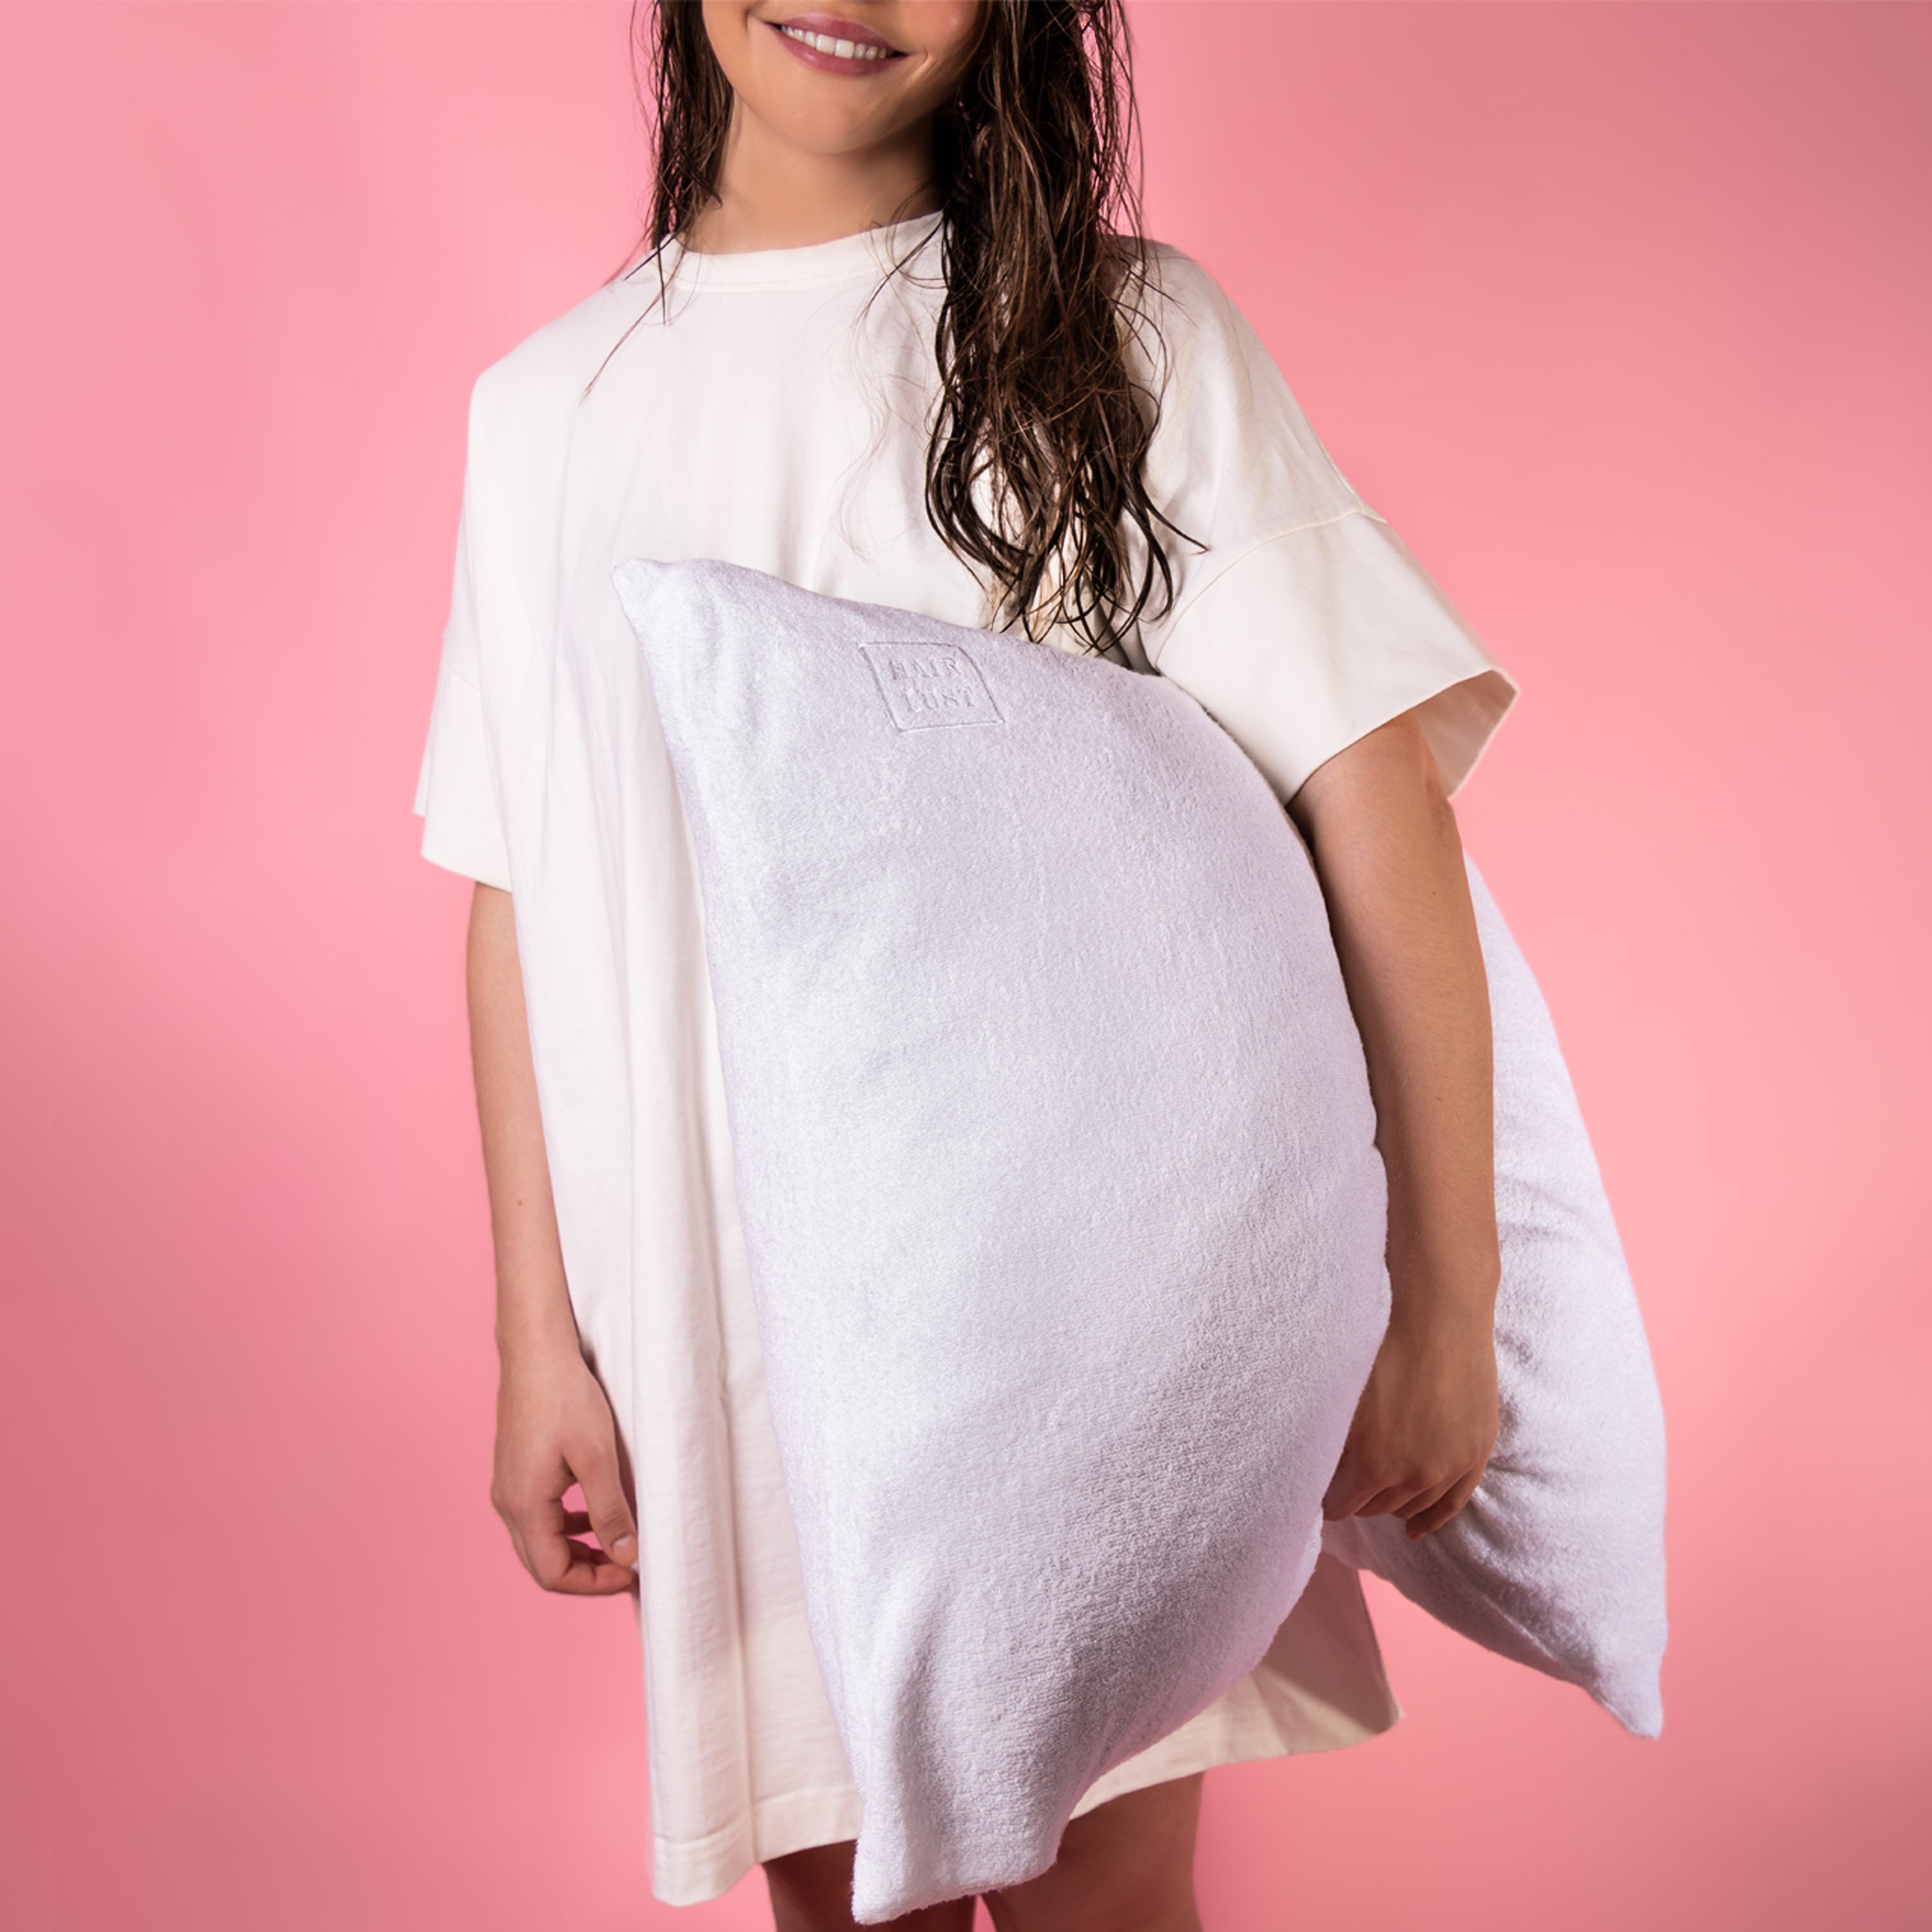 HairLust Bamboo Towel Pillowcase